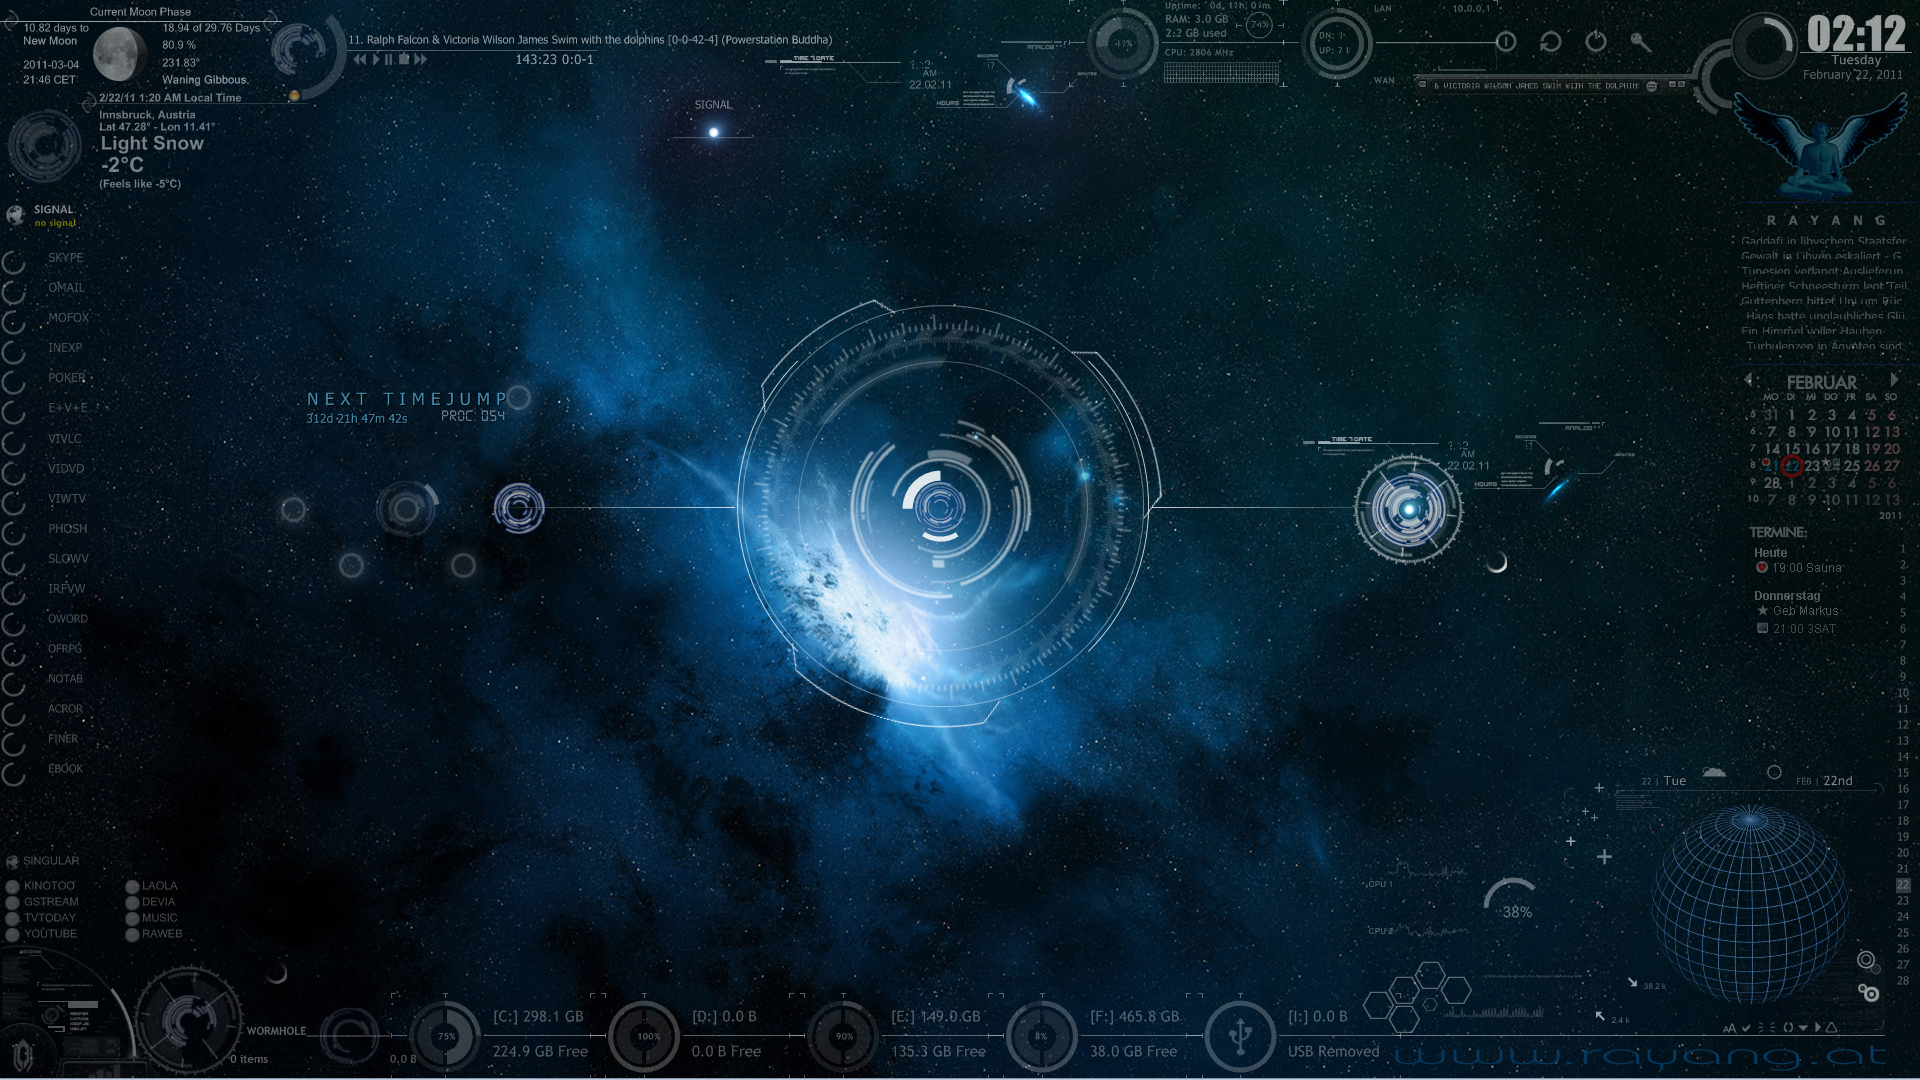 Timewarpout rainmeter by rayang1 on deviantart for Deviantart rainmeter